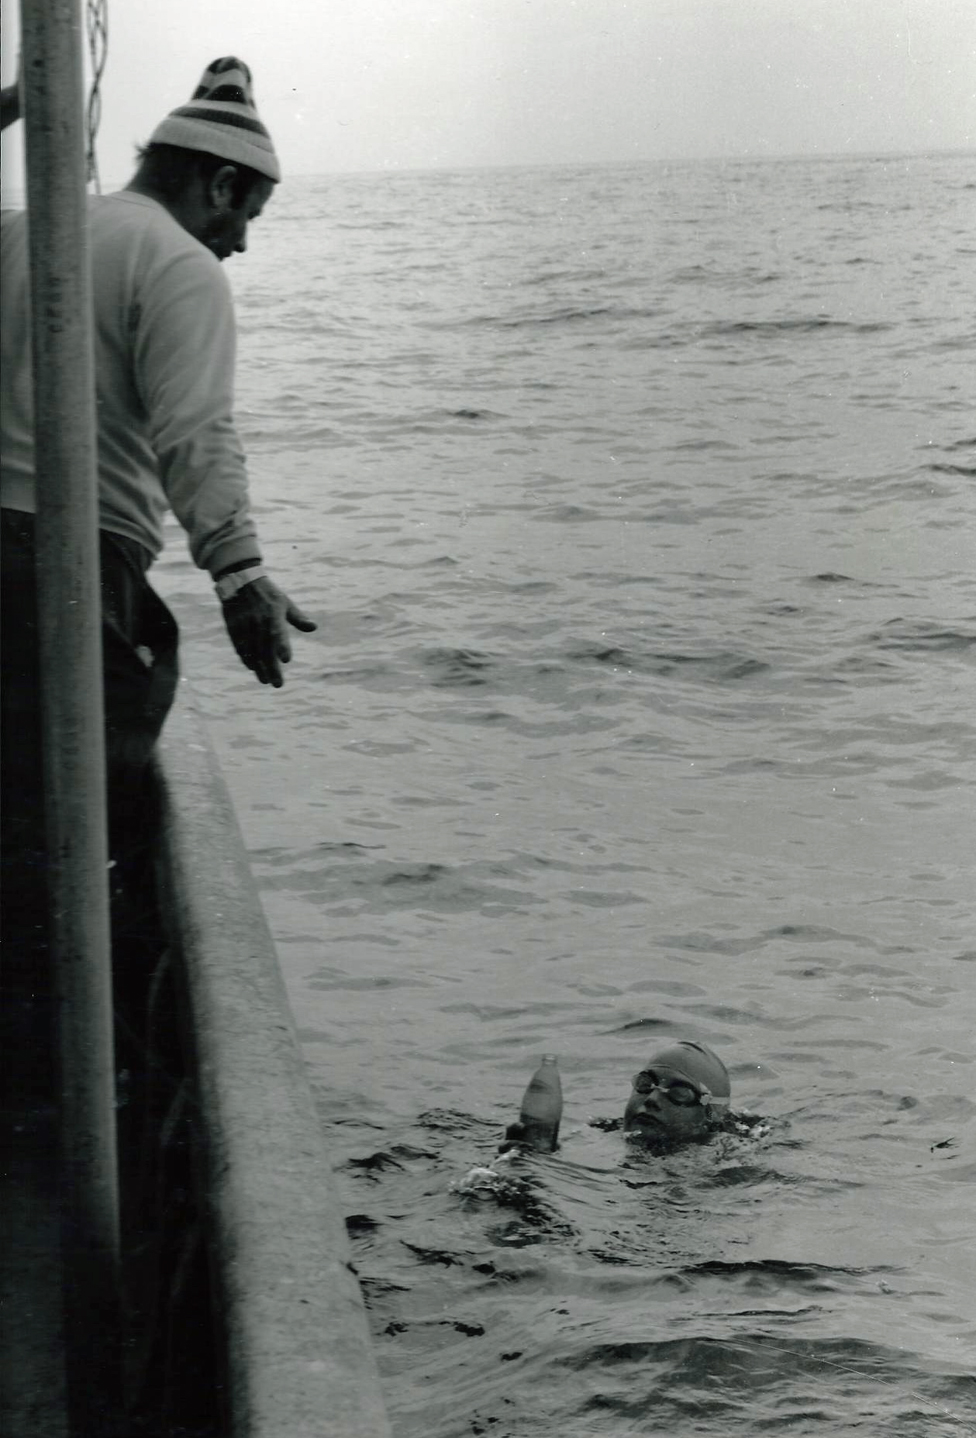 John Bullet looks down on Tom Gregory as he swims the channel